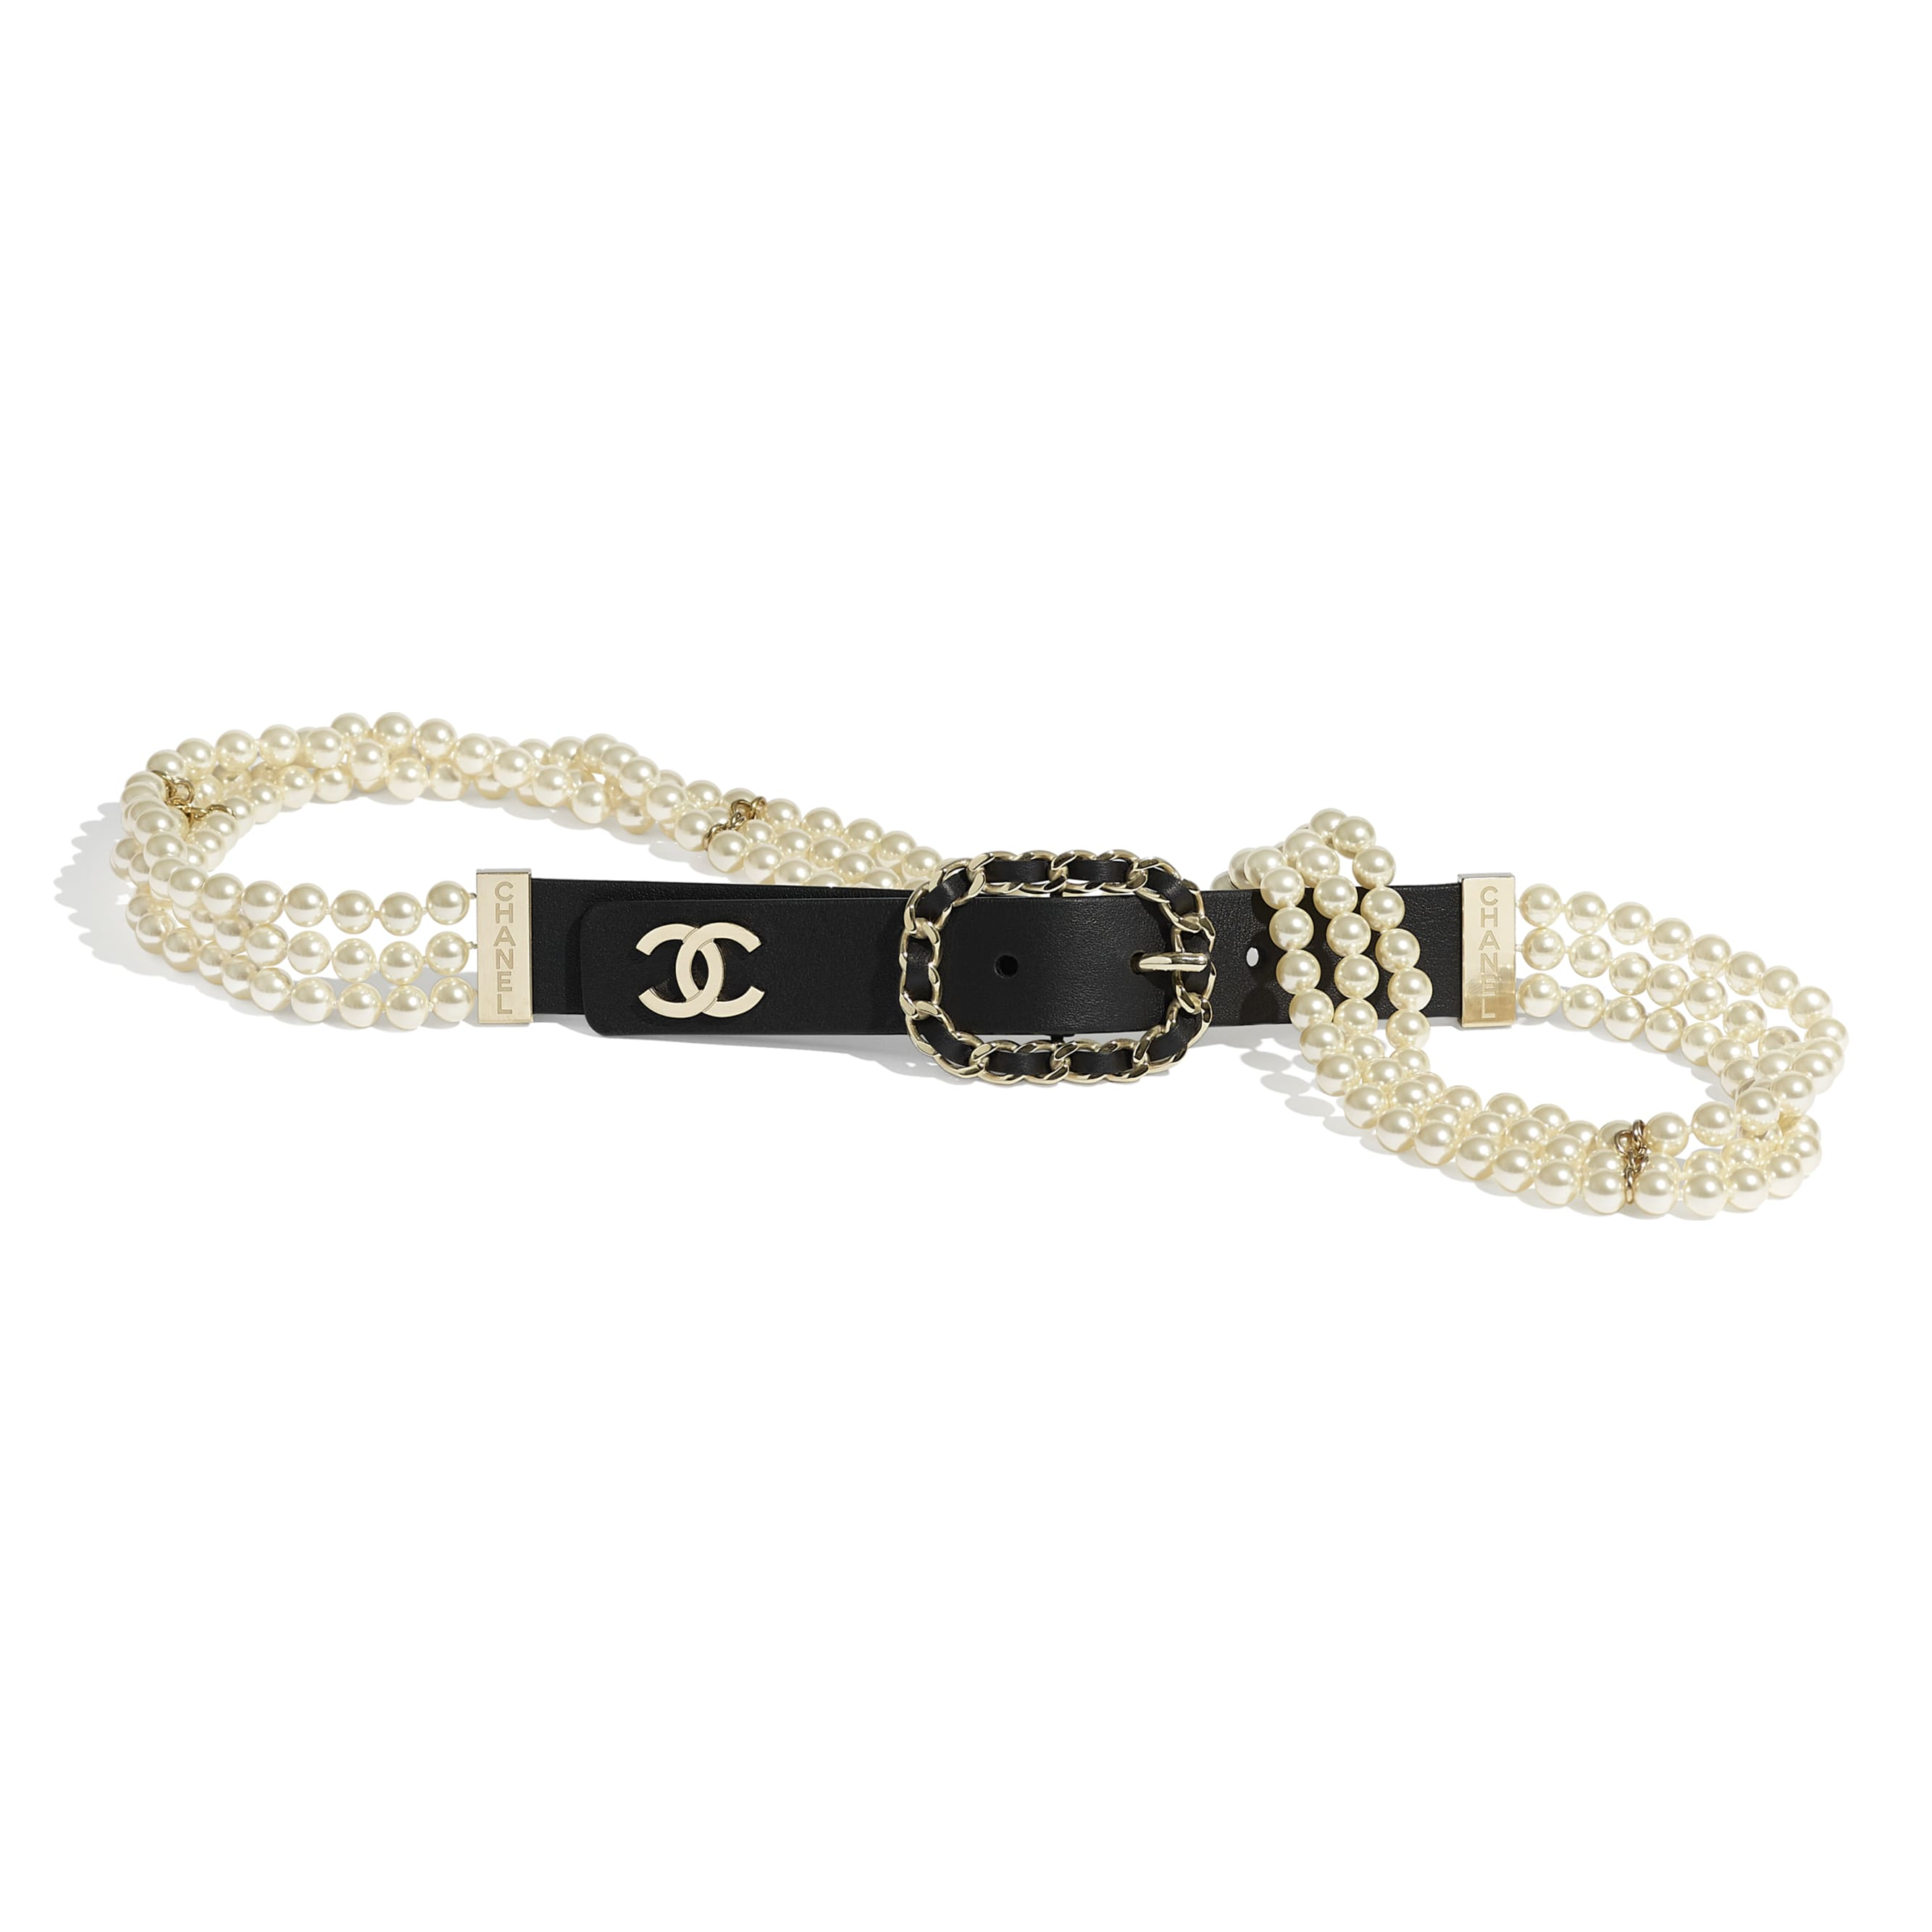 Belt - Black - Calfskin, Glass Pearls & Gold-Tone Metal - CHANEL - Default view - see standard sized version